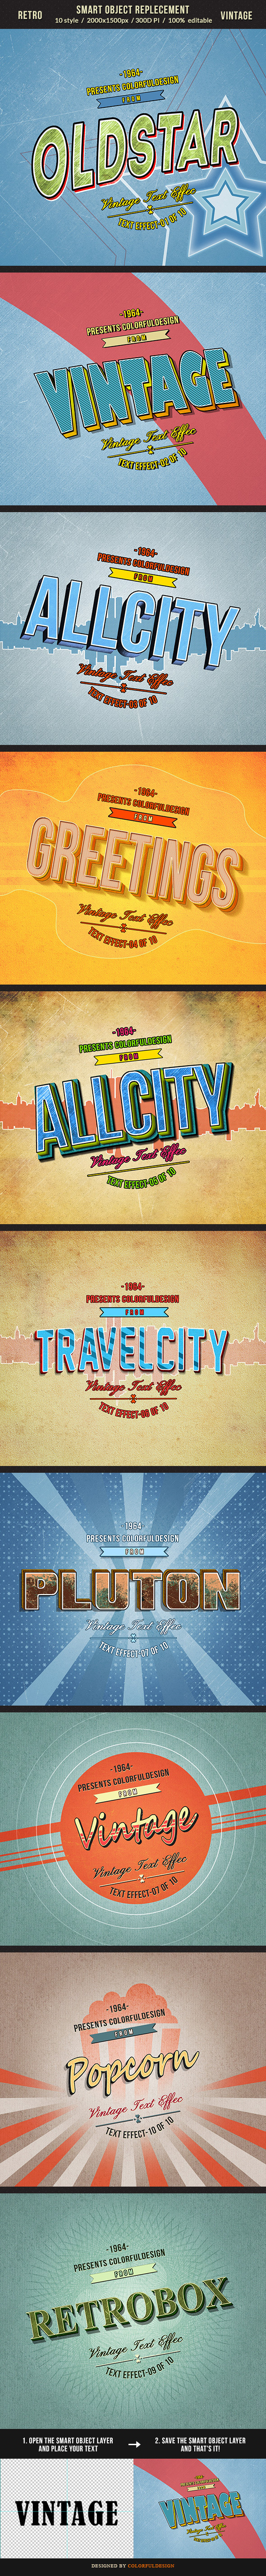 Retro Vintage Text Effects - Text Effects Actions